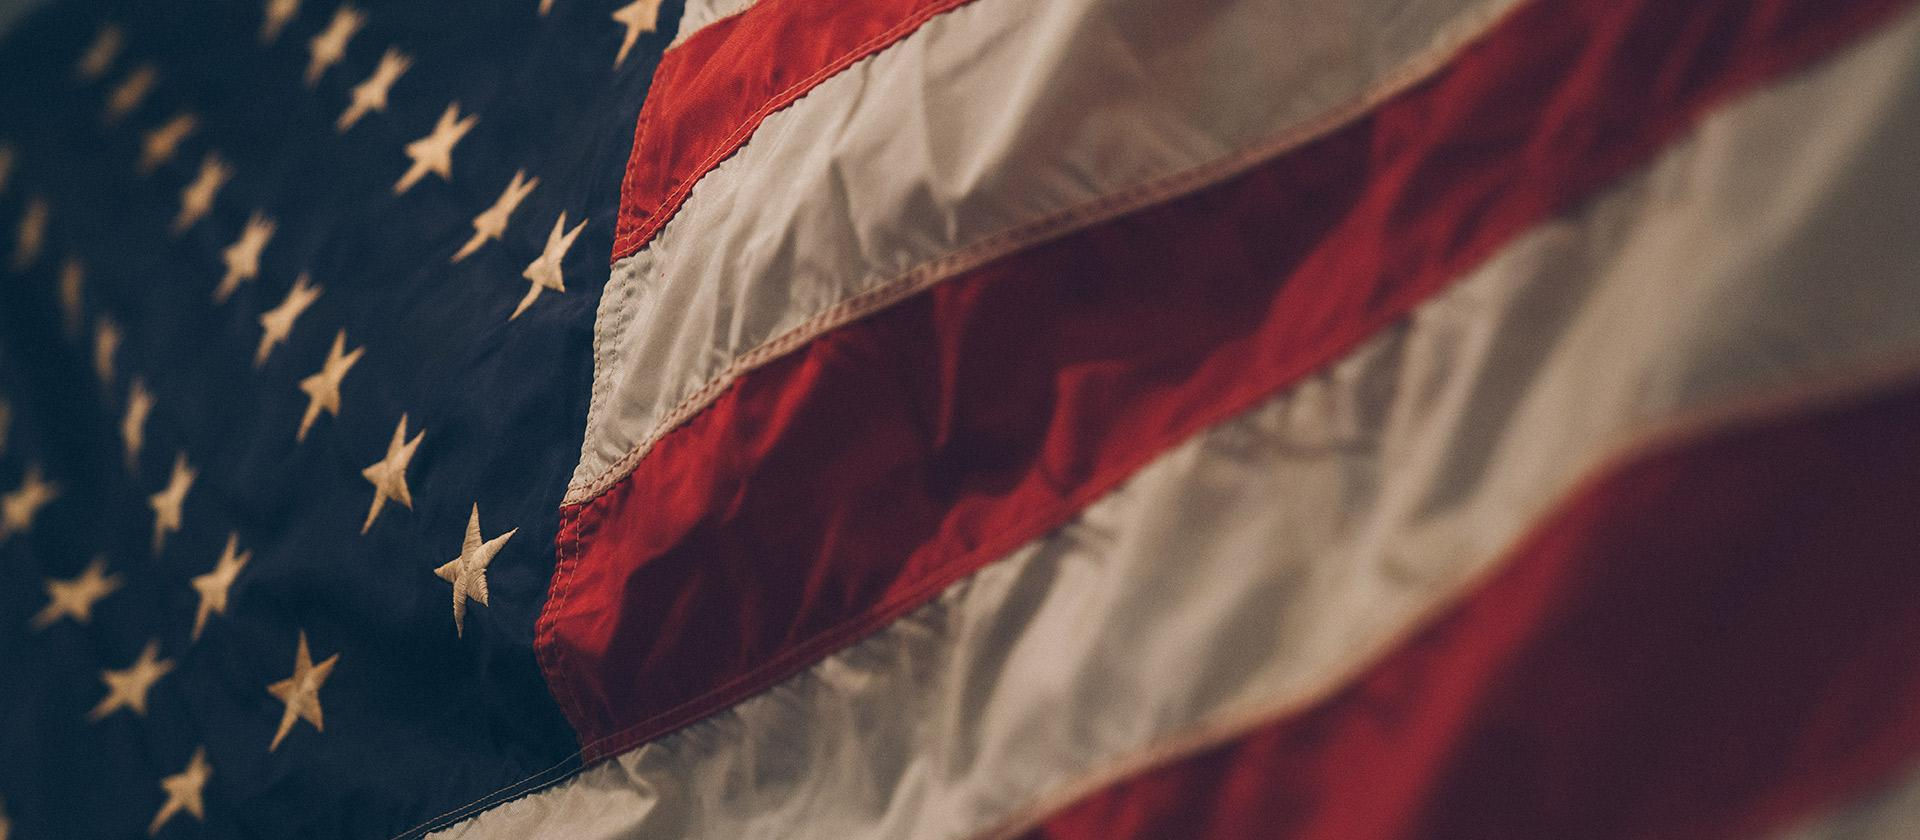 In observance of Memorial Day, the College will be closed Monday, May 27th. Please take time to honor those who have given the ultimate sacrifice while serving in the U.S. military.